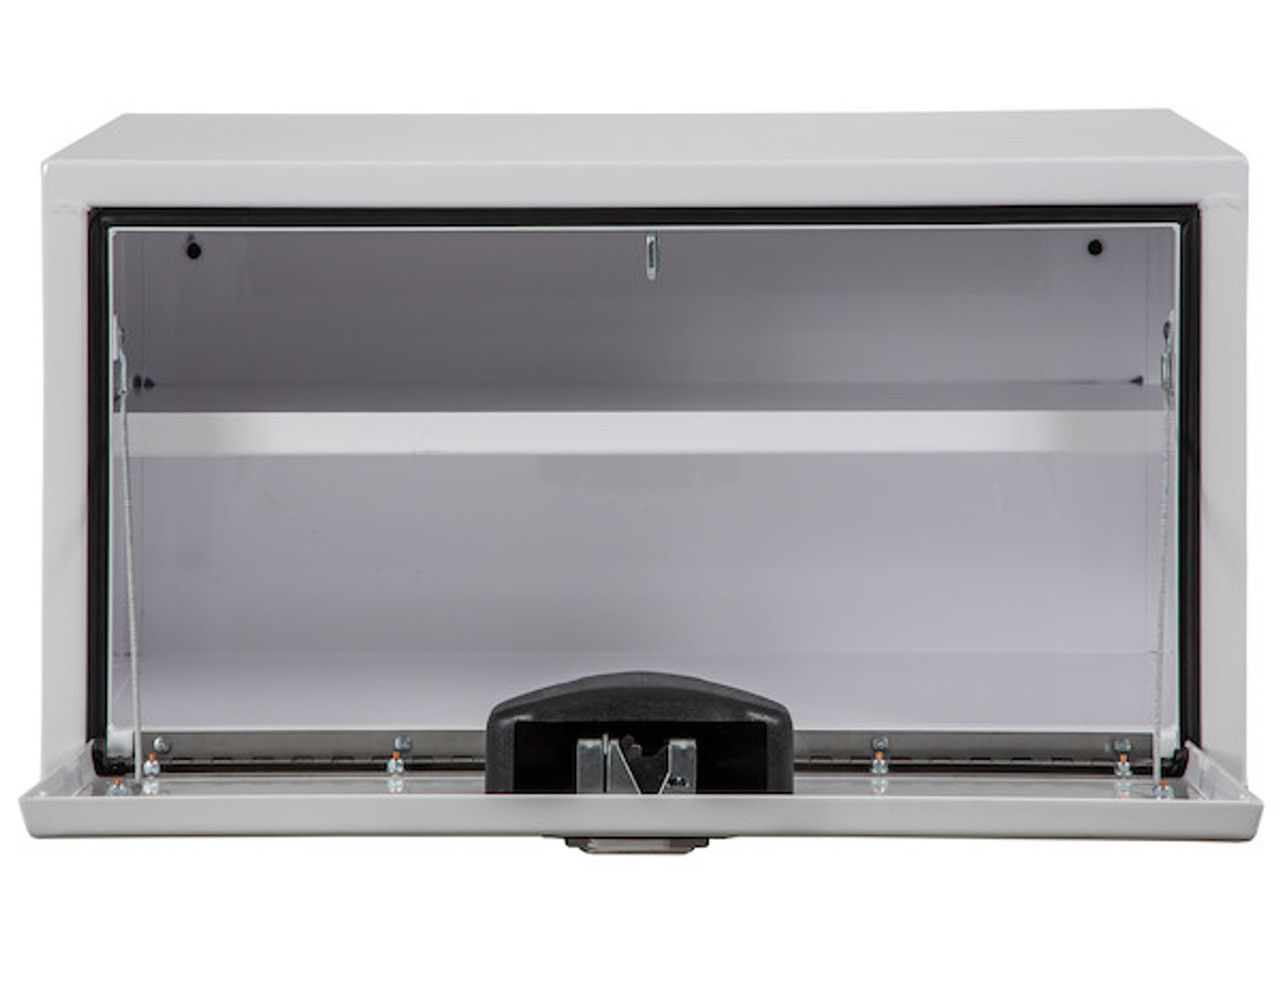 """1703404 BUYERS PRODUCTS WHITE STEEL UNDERBODY TRUCK TOOLBOX WITH BUILT-IN SHELF 14""""HX16""""DX30""""W Picture # 4"""